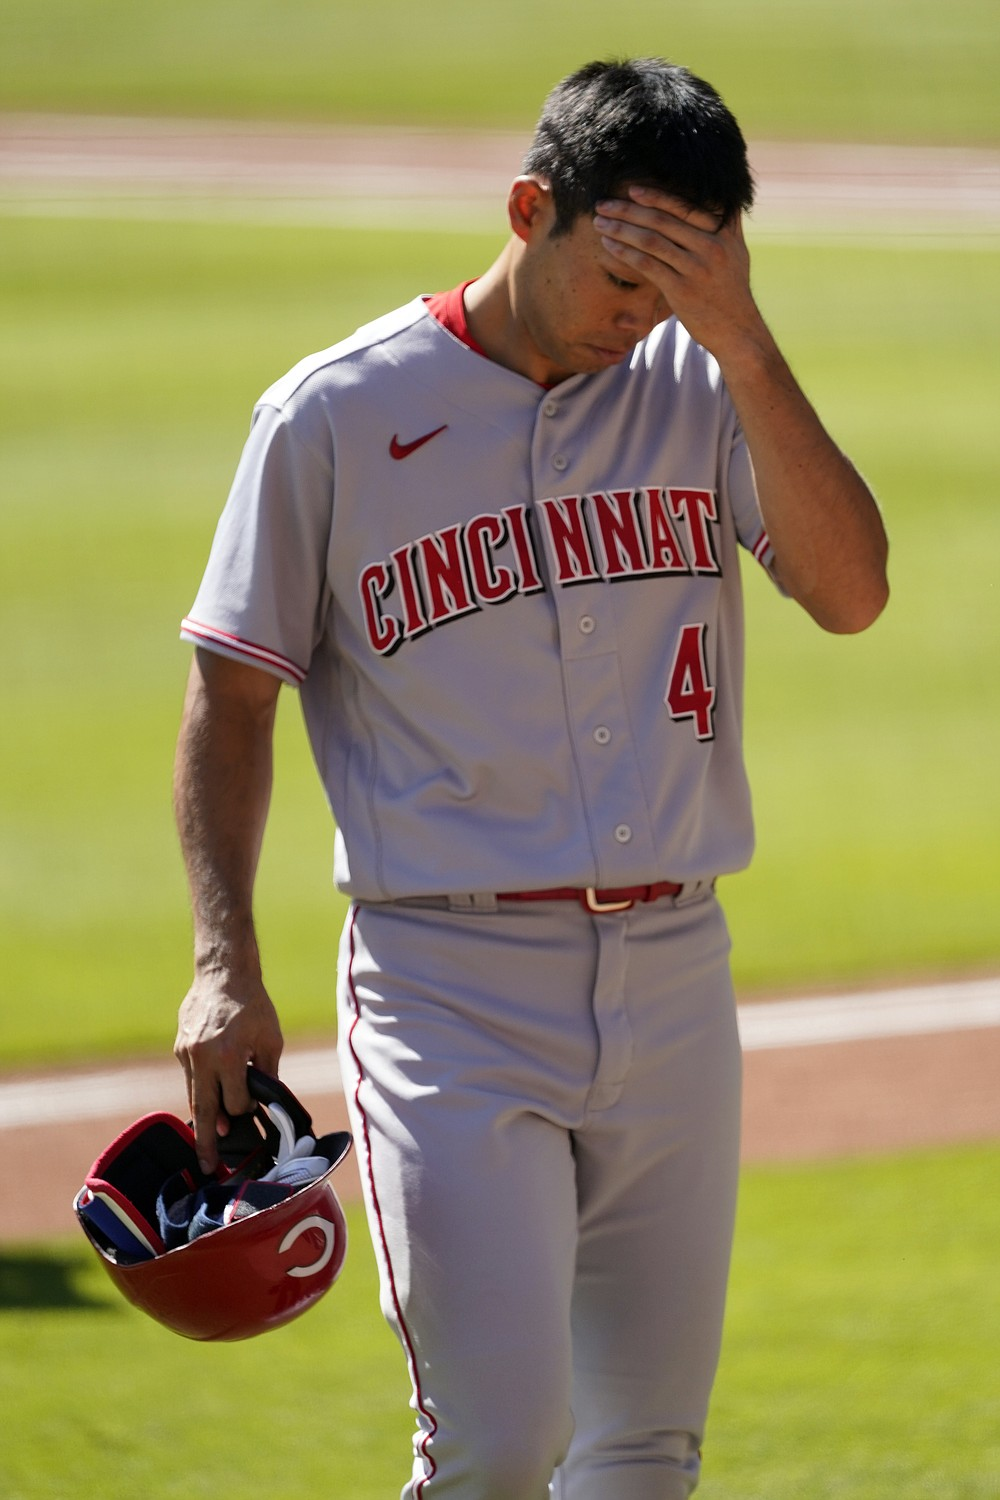 Cincinnati Reds' Shogo Akiyama of Japan, heads to the dugout after grounding out during the eighth inning against the Atlanta Braves in Game 2 of a National League wild-card baseball series, Thursday, Oct. 1, 2020, in Atlanta. (AP Photo/John Bazemore)